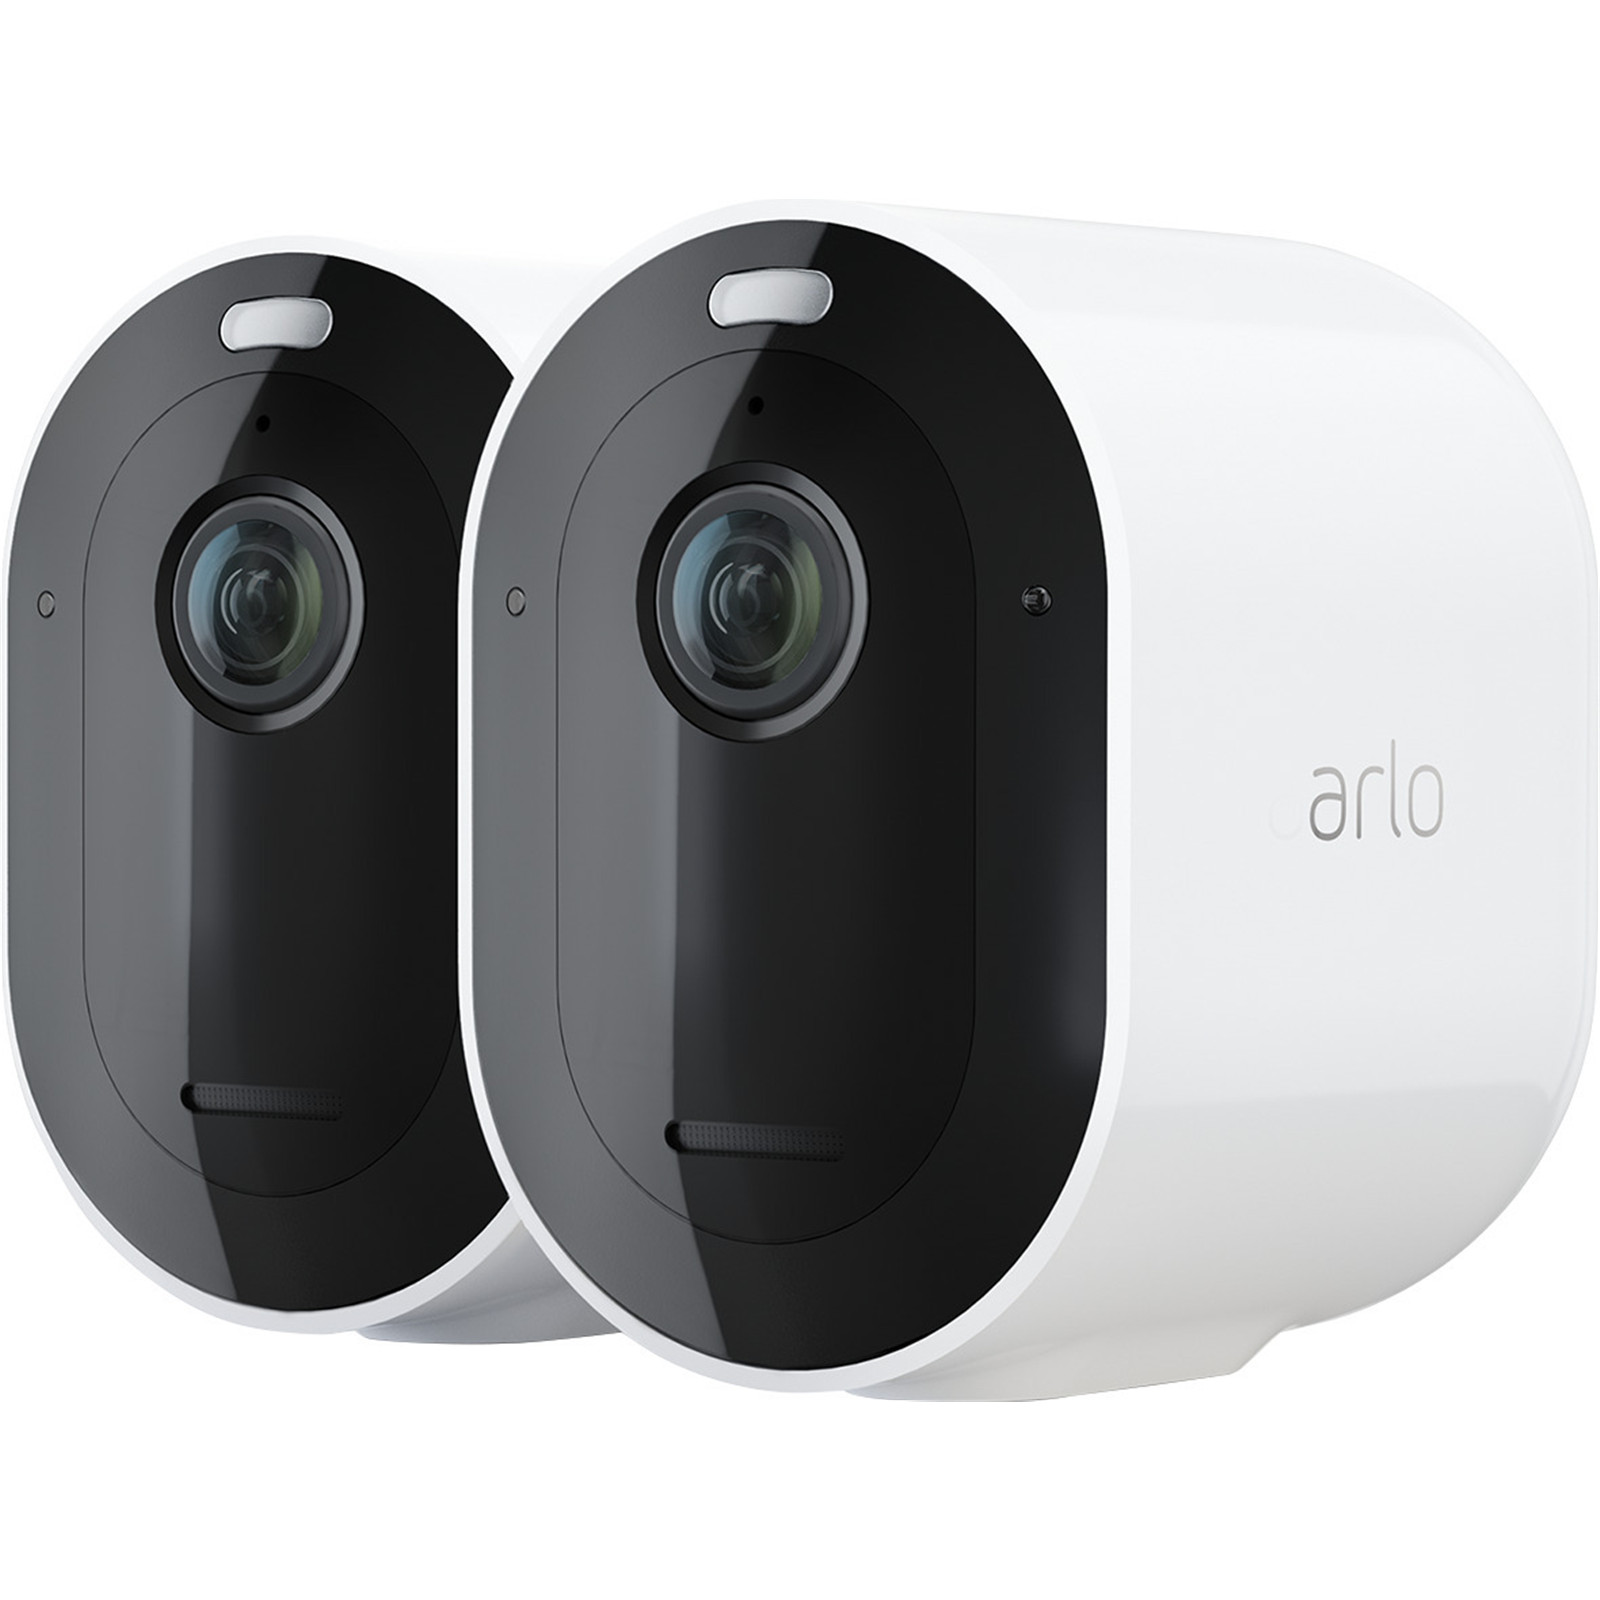 Buy The Arlo Pro 3 Vms4240p Wire Free Security Camera System 2 Camera Kit Vms4240p 100aus Online Pbtech Co Nz